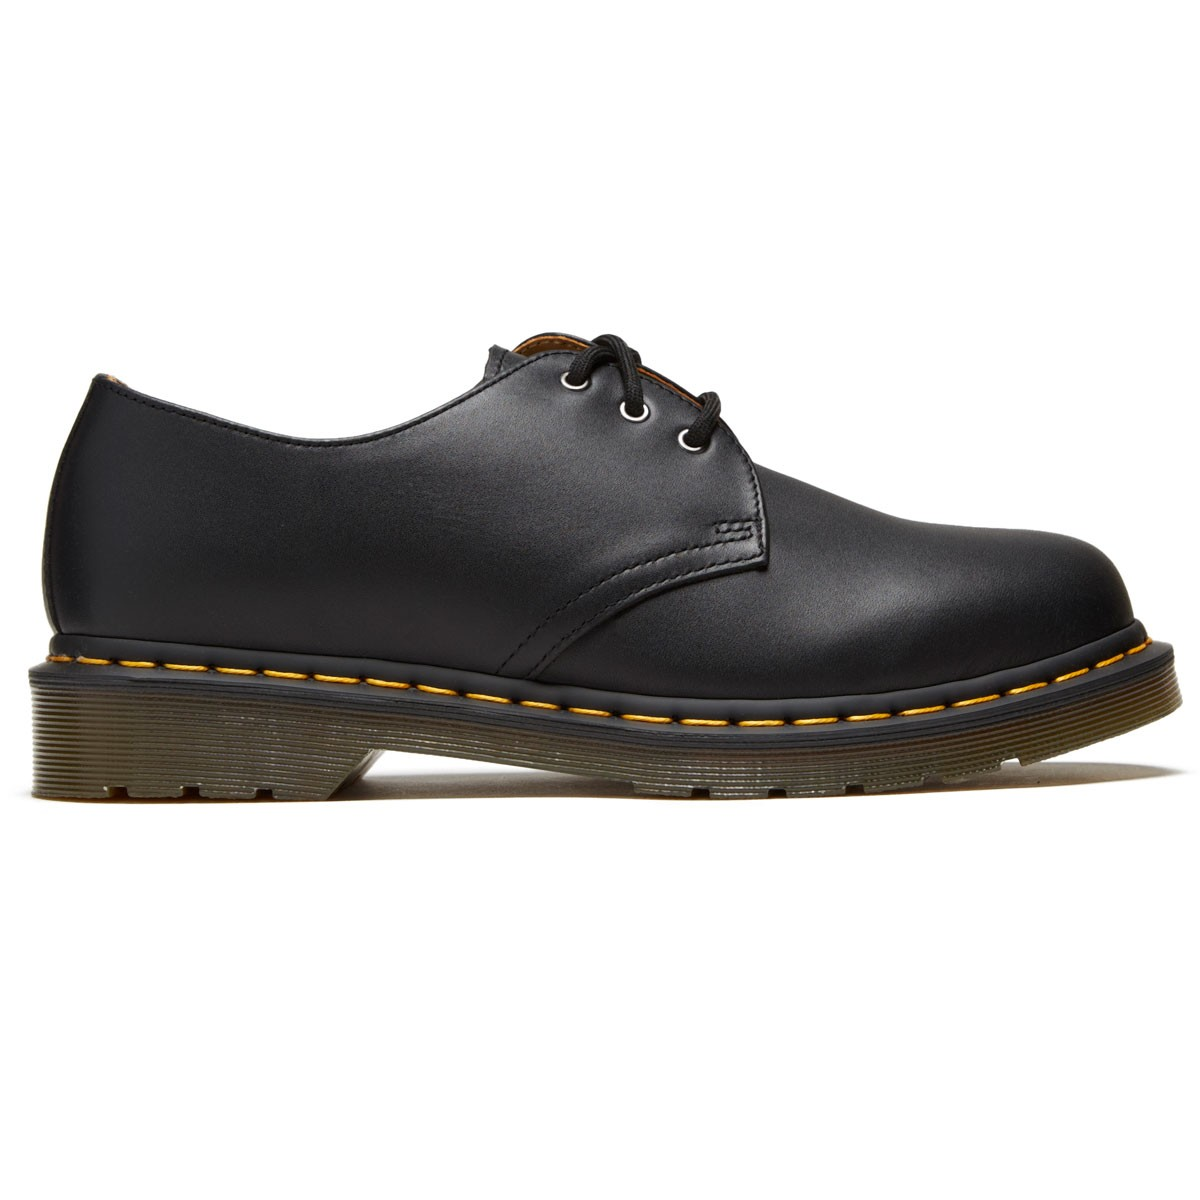 Dr. Martens 1461 3 Eye Nappa Leather Shoes